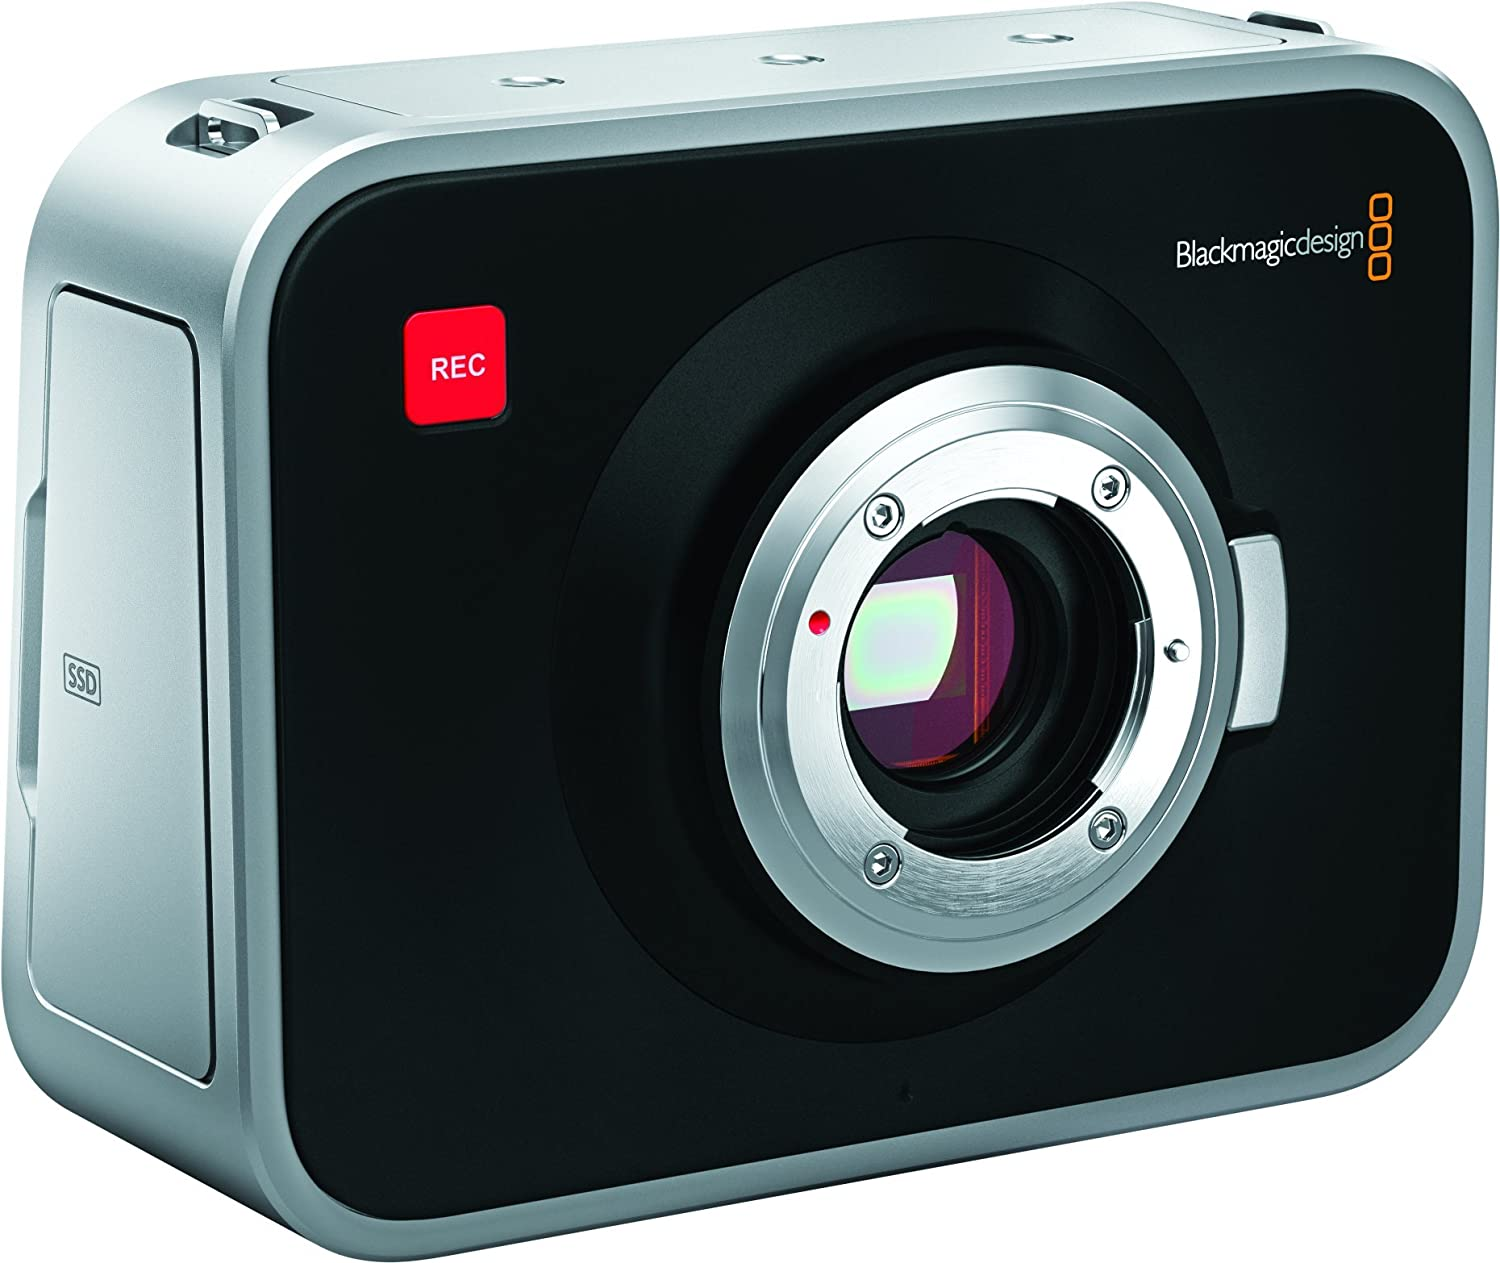 Amazon.com : Blackmagic Design Cinema Camera MFT 2.5k Video Camera ...